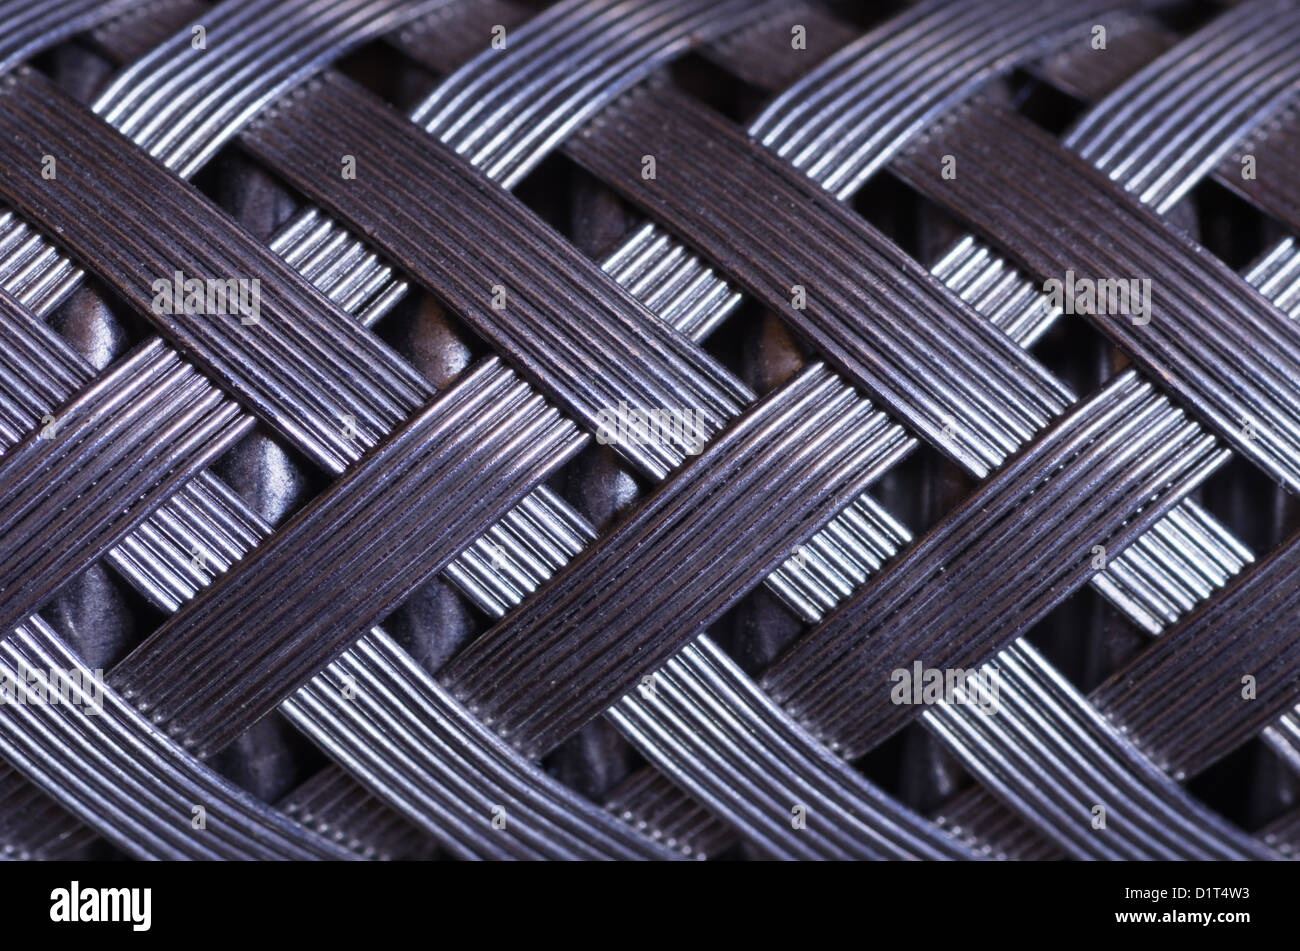 macro image of a metal wire braided reinforced hose - Stock Image